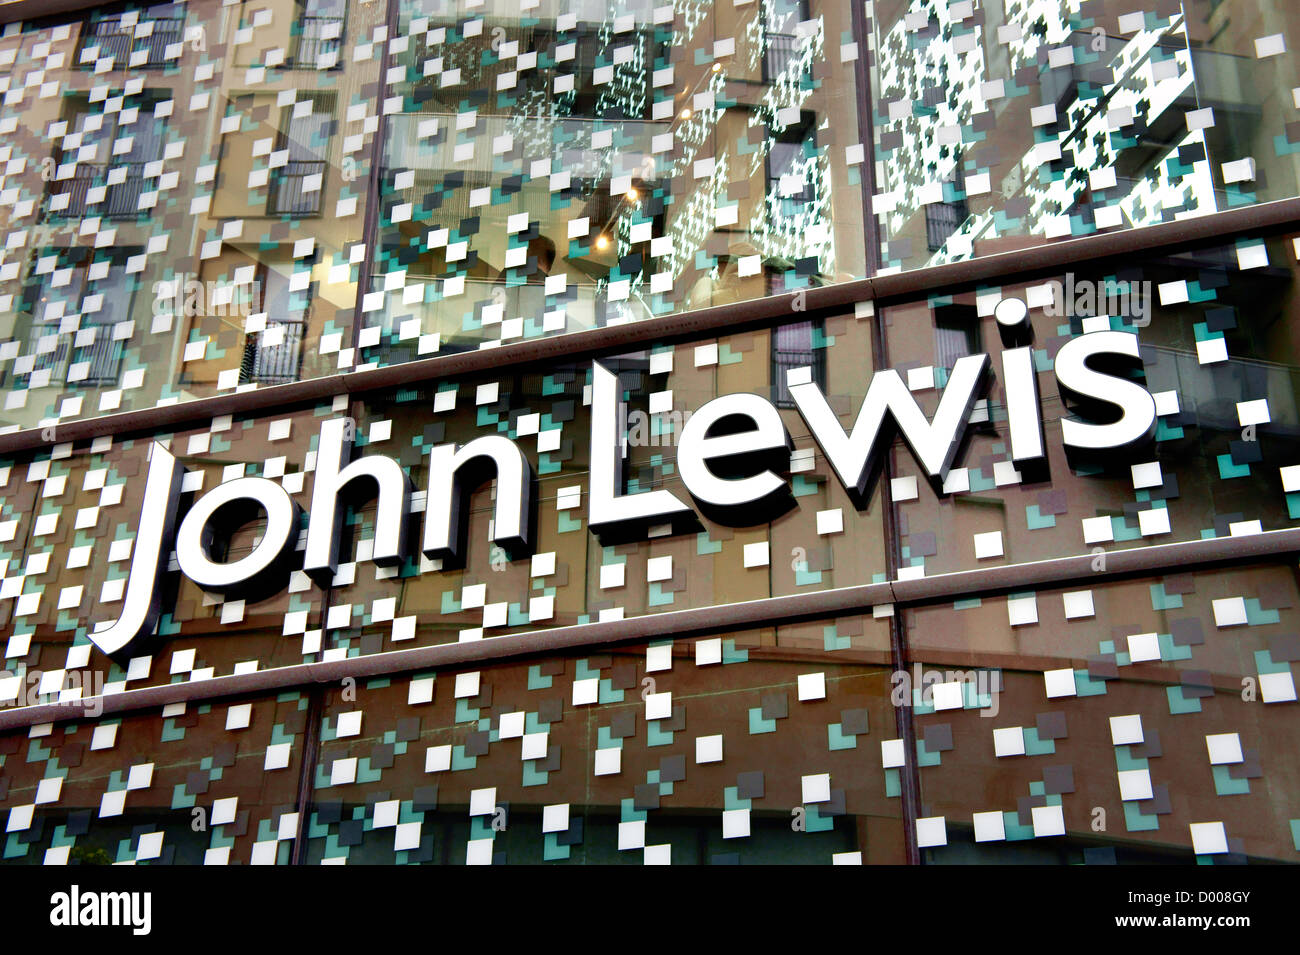 John Lewis department store logo on glass facade of new store. The Hayes, Cardiff city centre, Wales - Stock Image